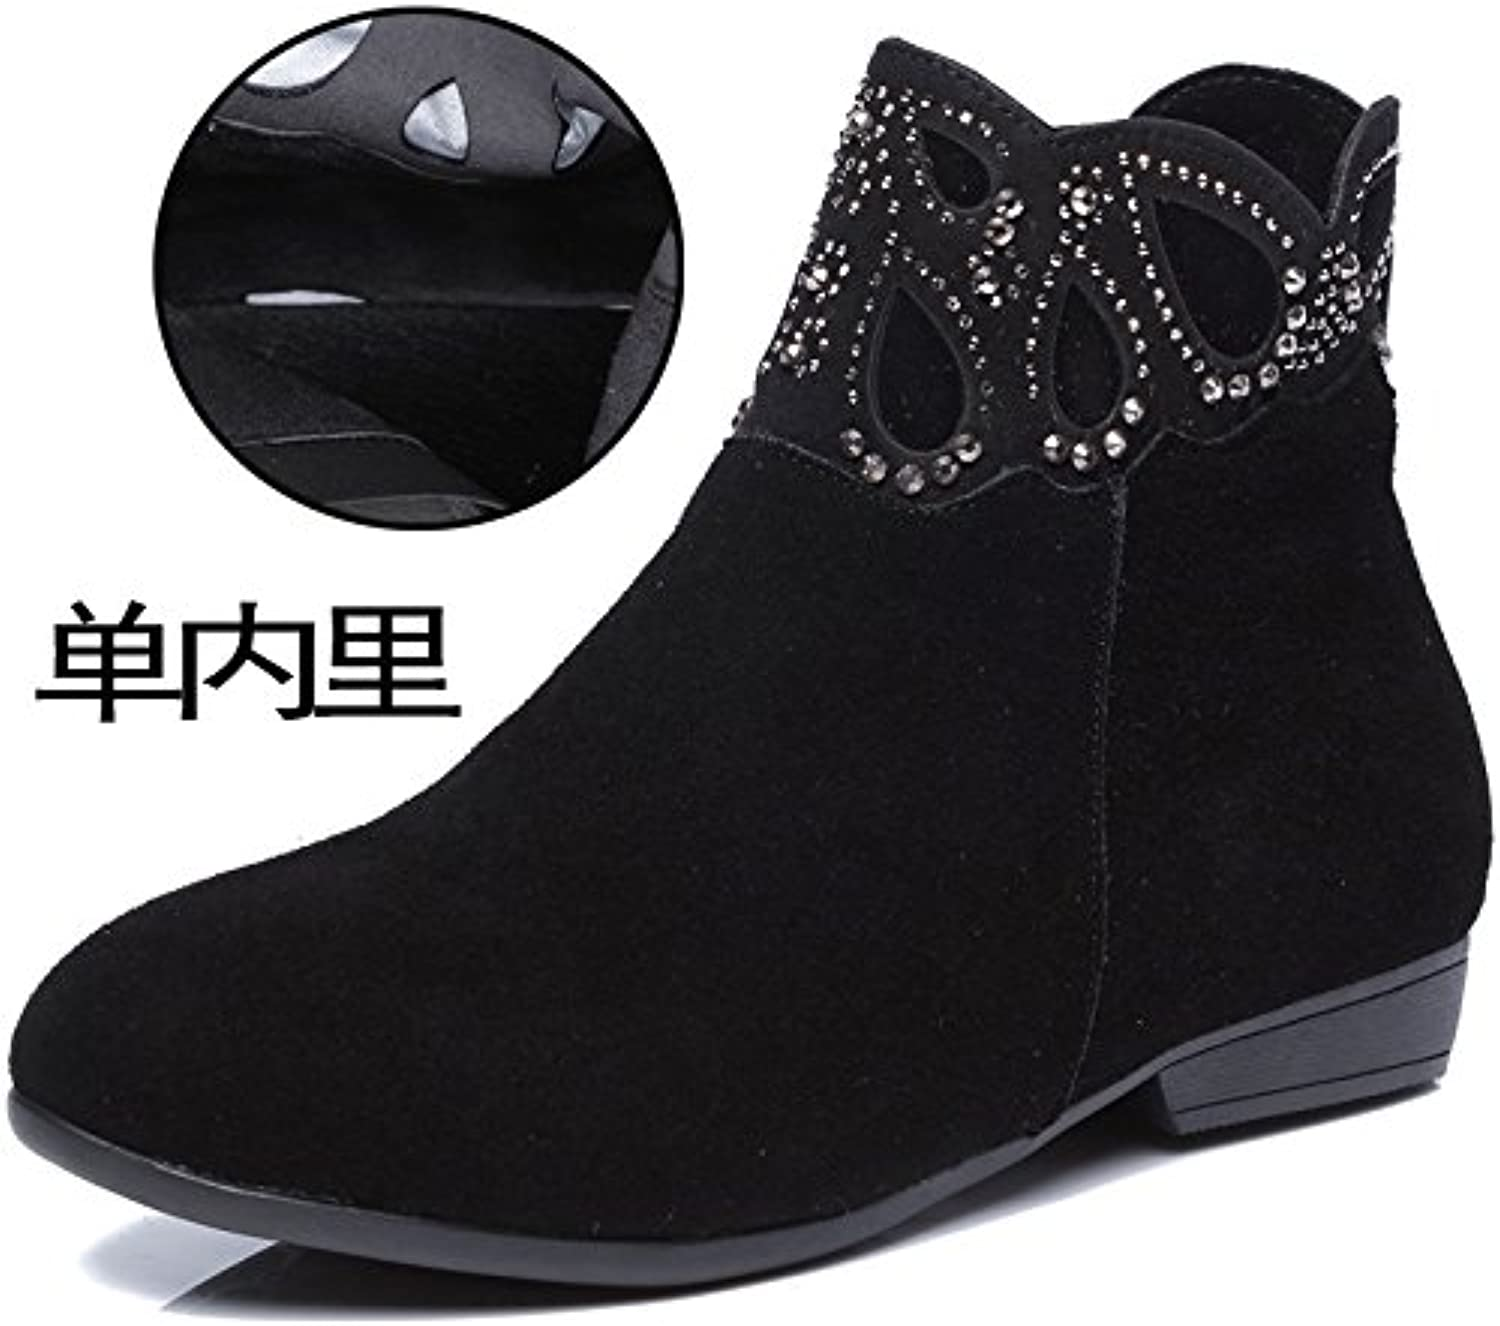 LGK&FA Women's Shoes Boots Flat Bottomed Martin Boots Single Boots Big Yards Women's Boots Hollowed out Shoes....